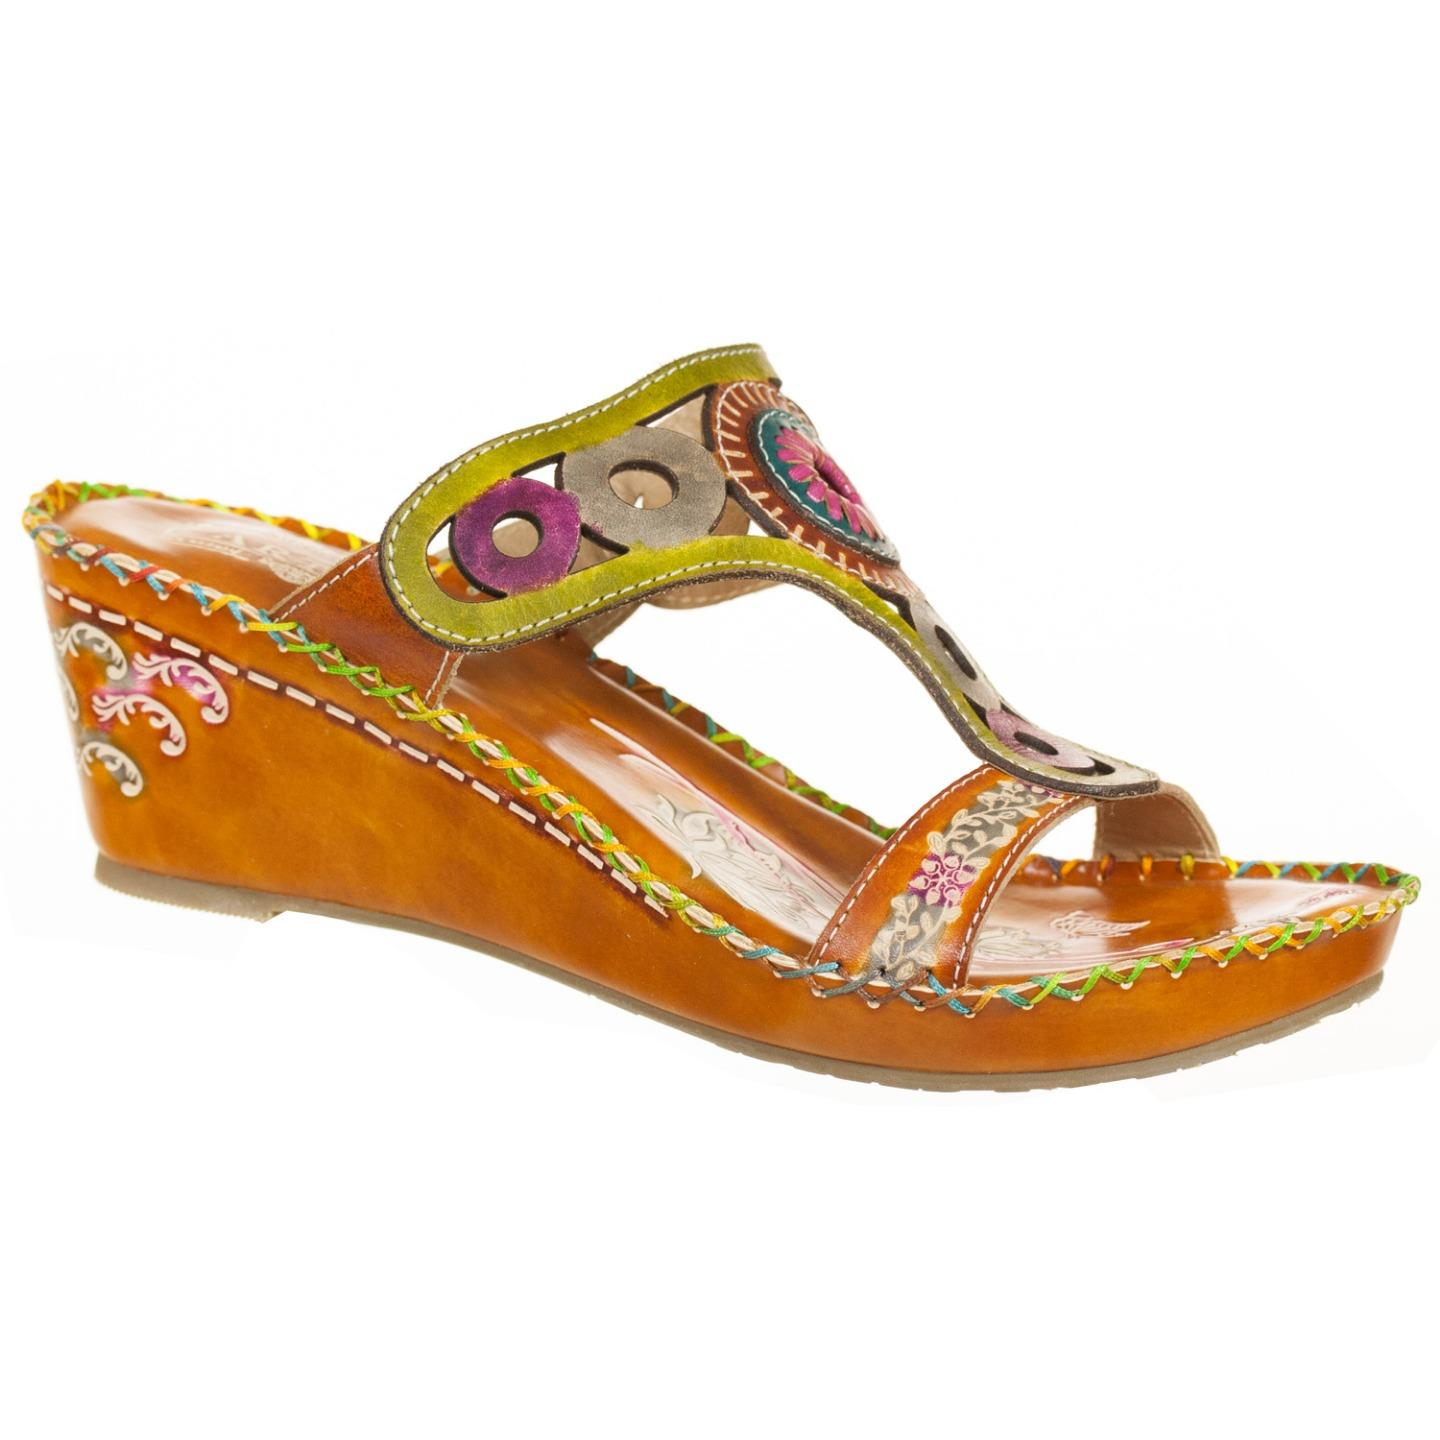 L'Artiste Collection By Spring Step Women's Aztec Sandal Camel Multi EU 37 US 7 by Spring Step